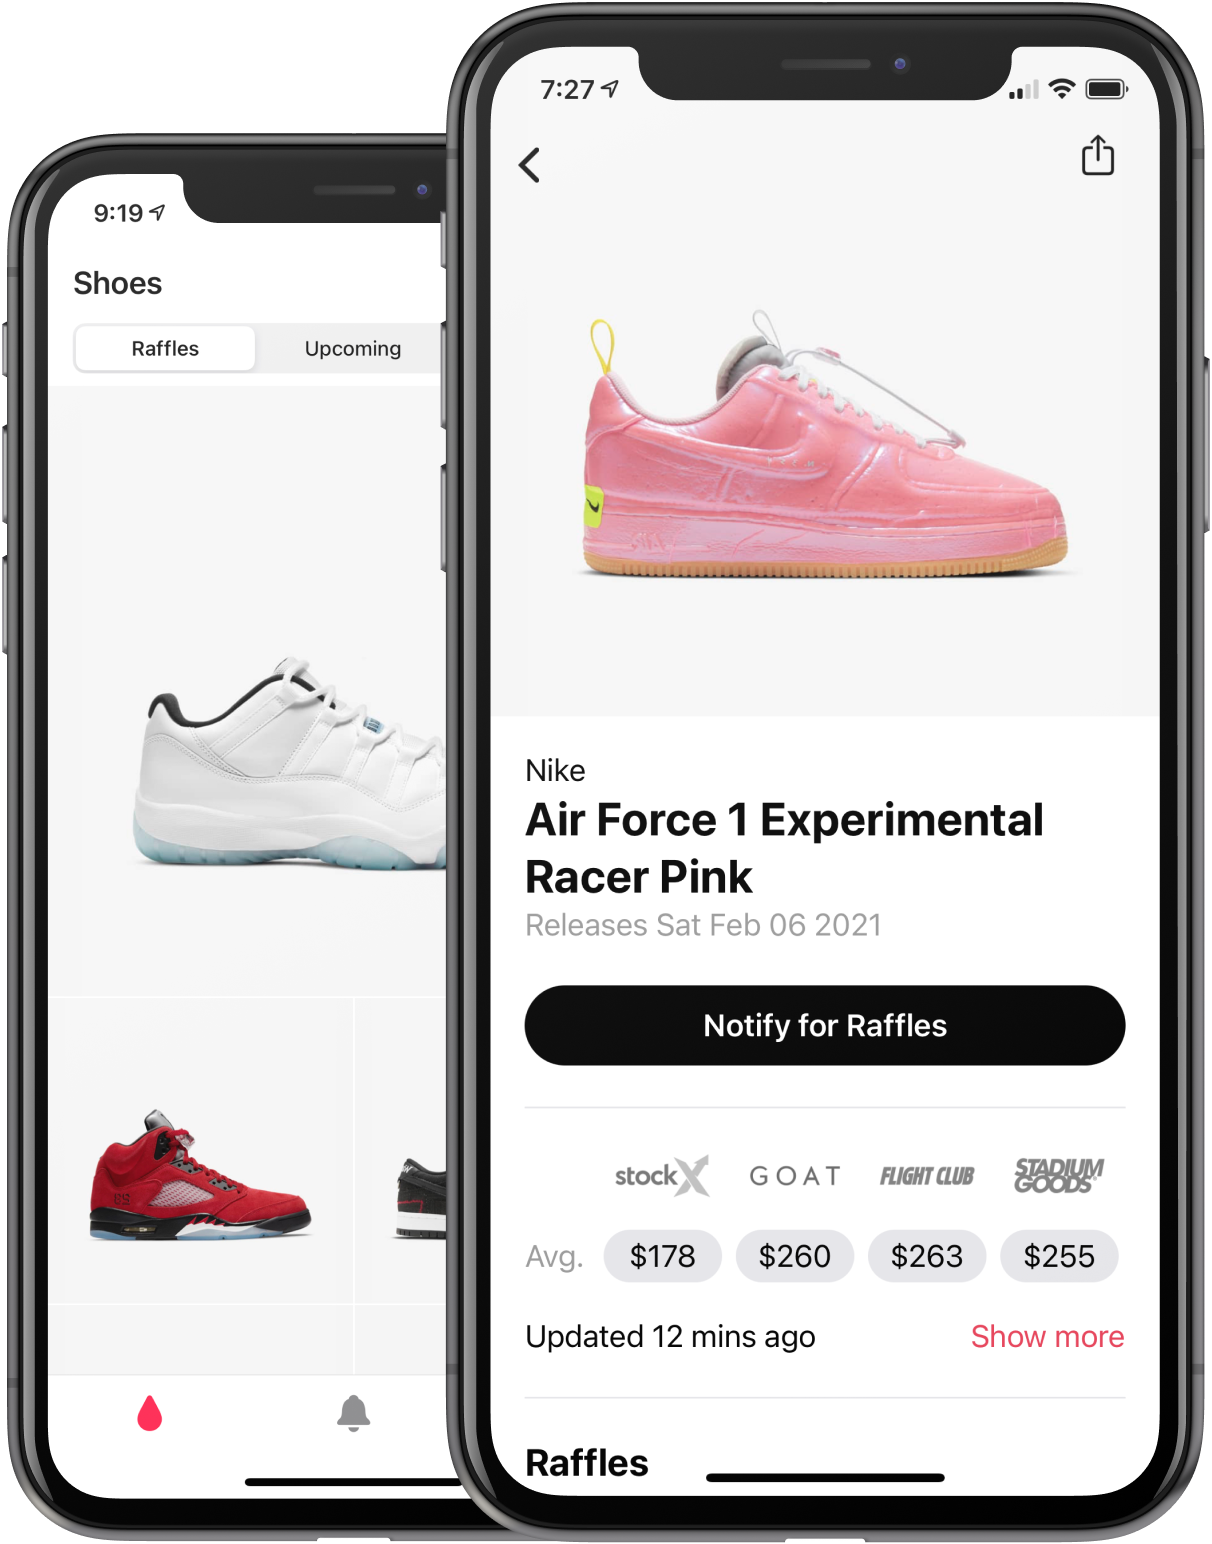 Real-time shoe sneaker pricing data